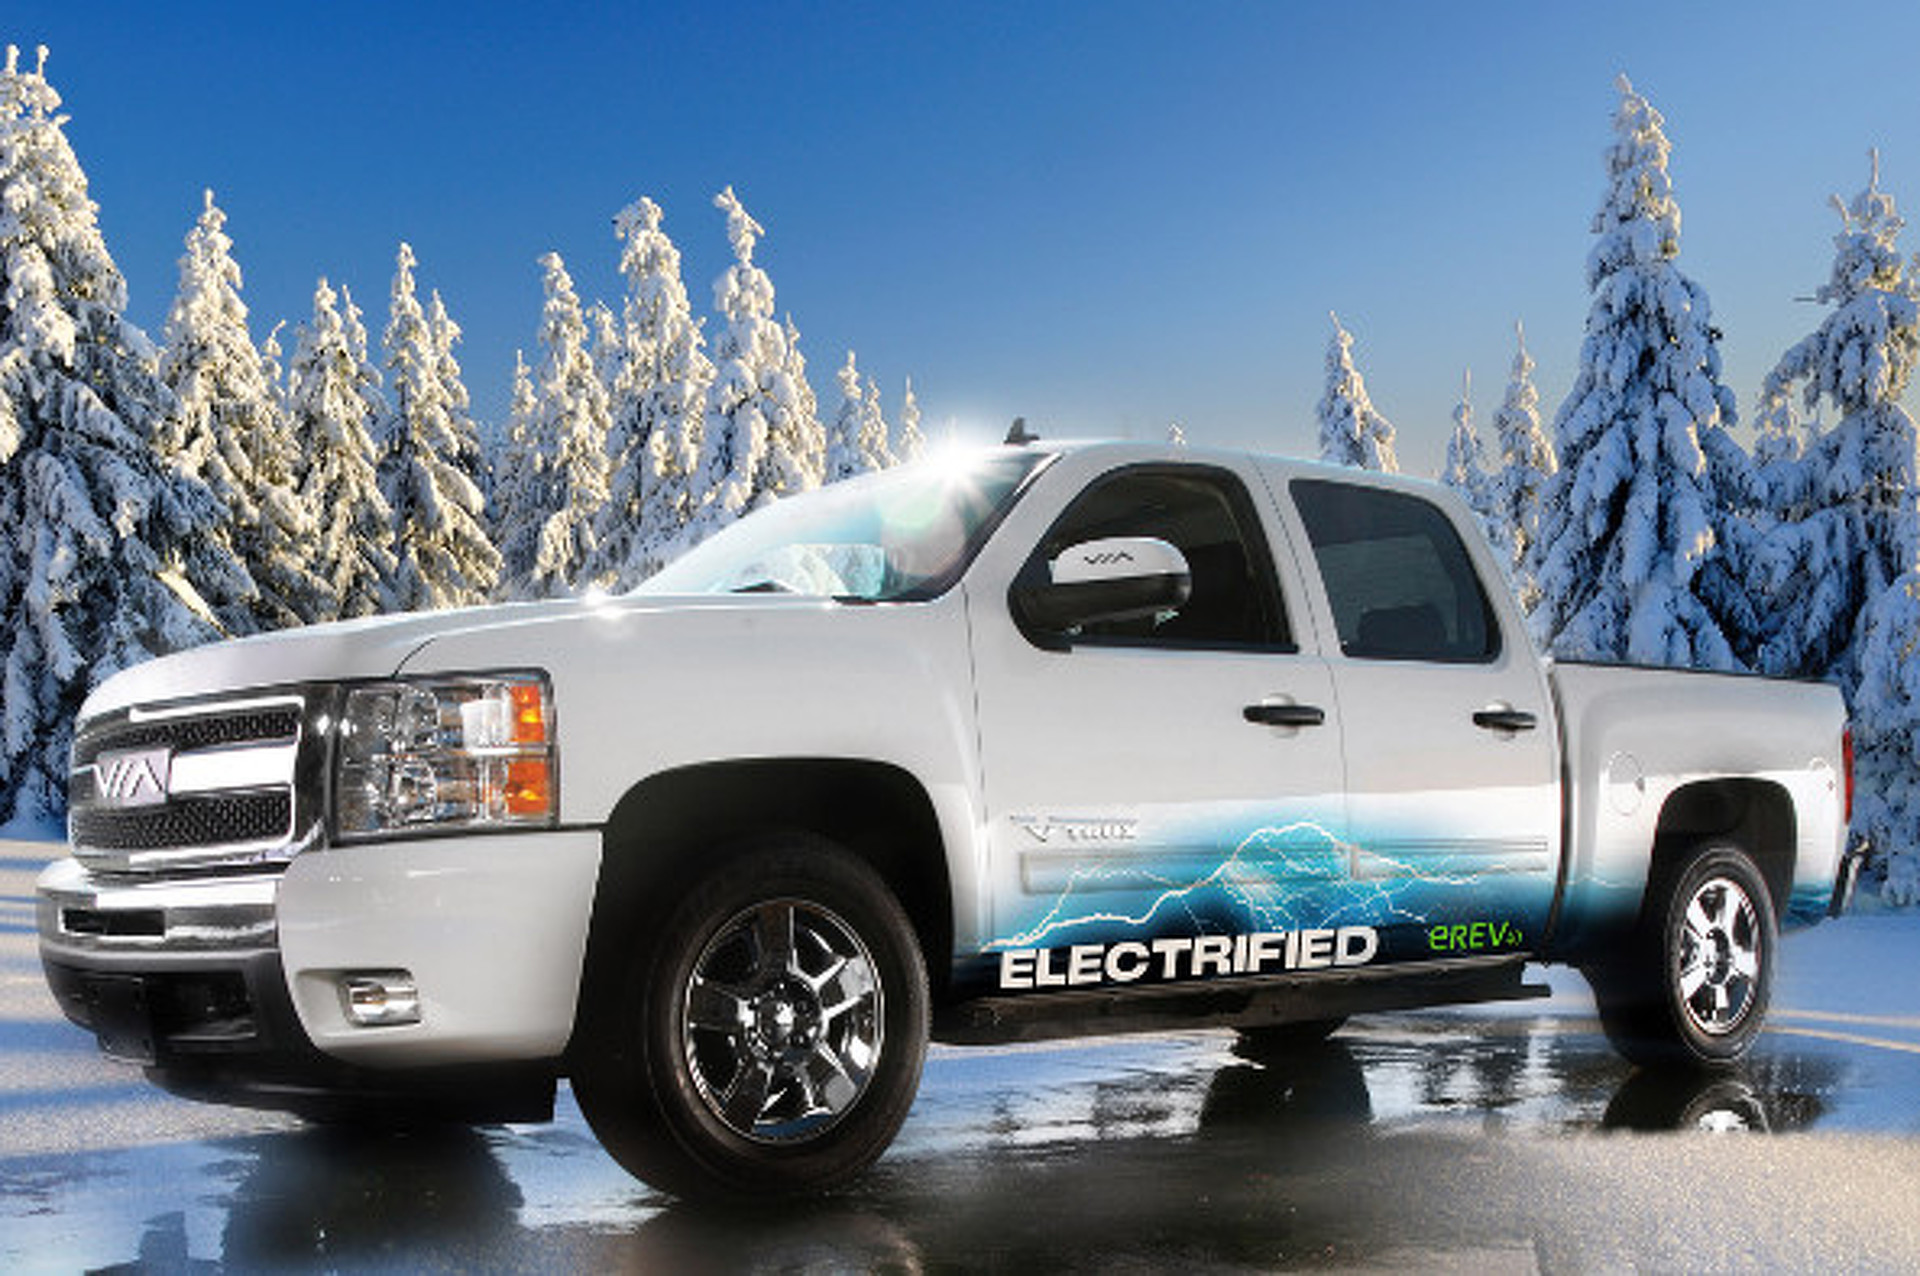 Electric Truck Company to Offer Solar Panel Bed Cover